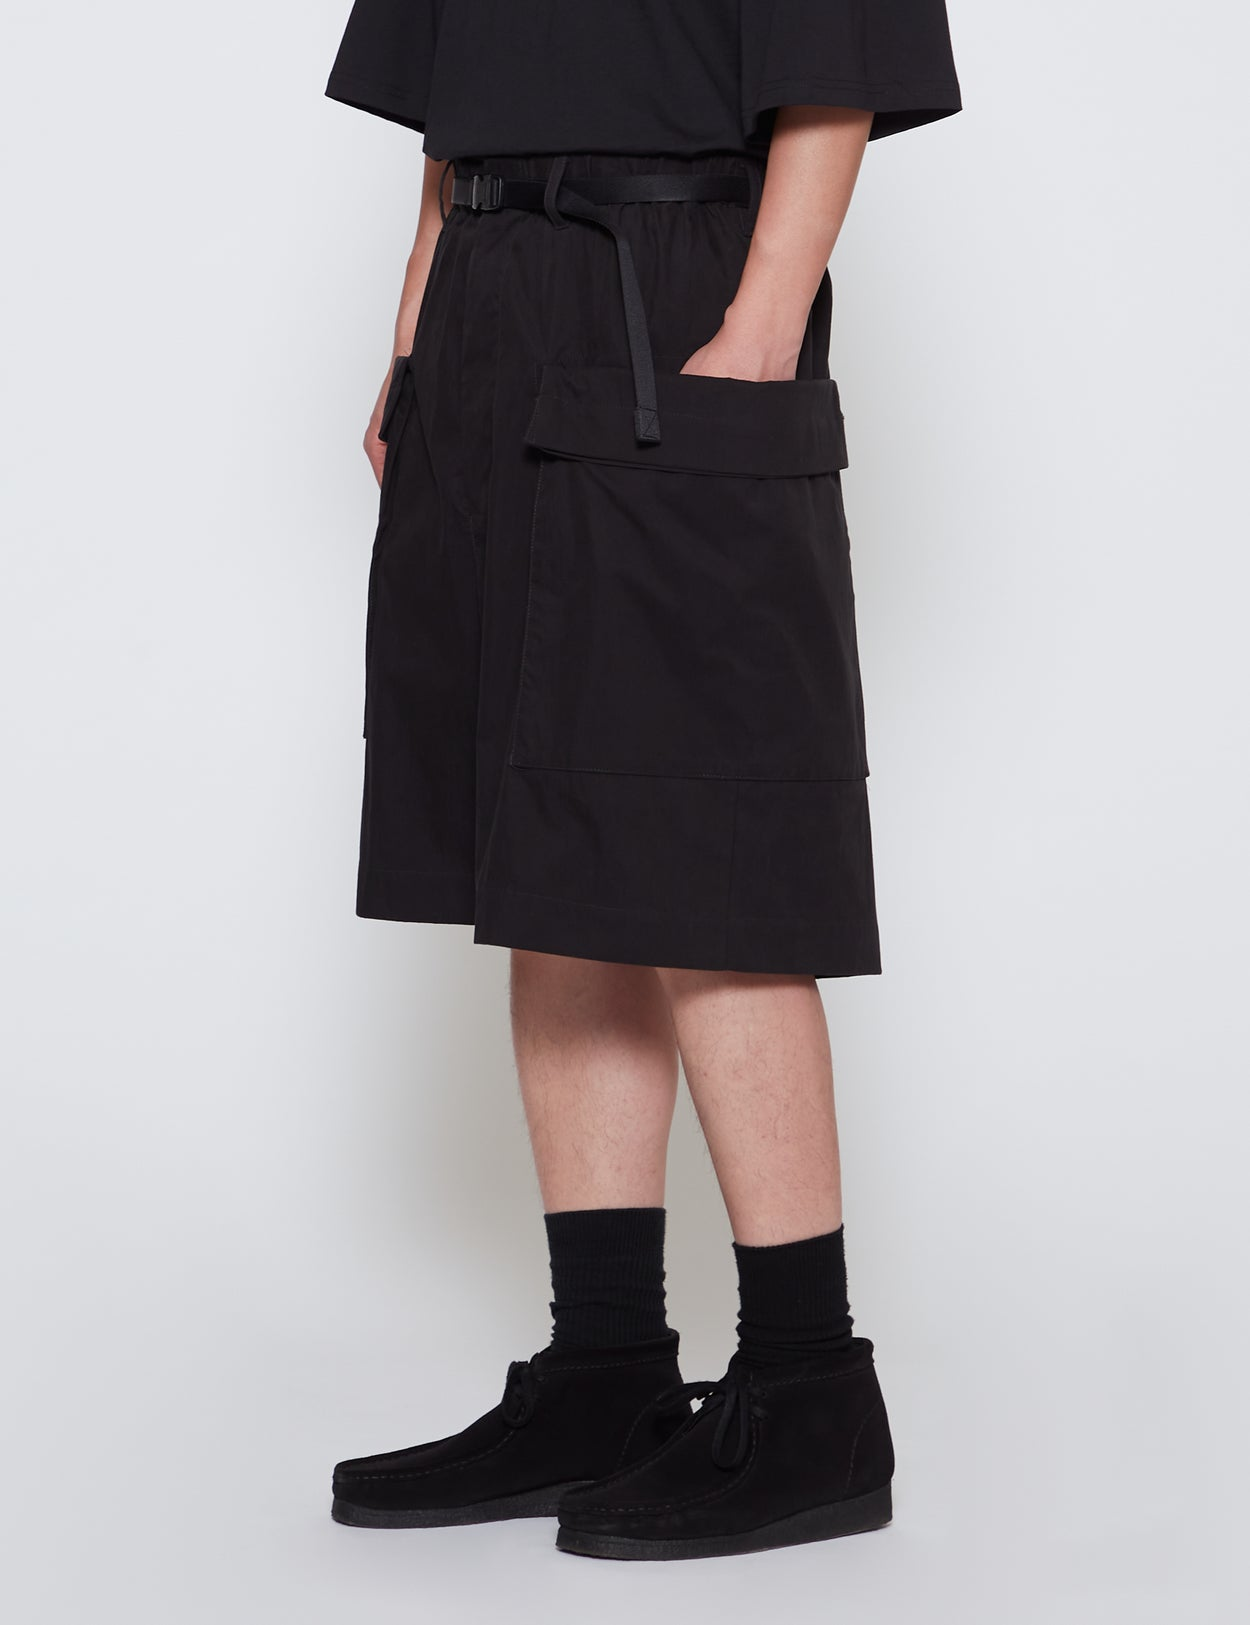 BLACK P-1 ACID SHORT PANTS